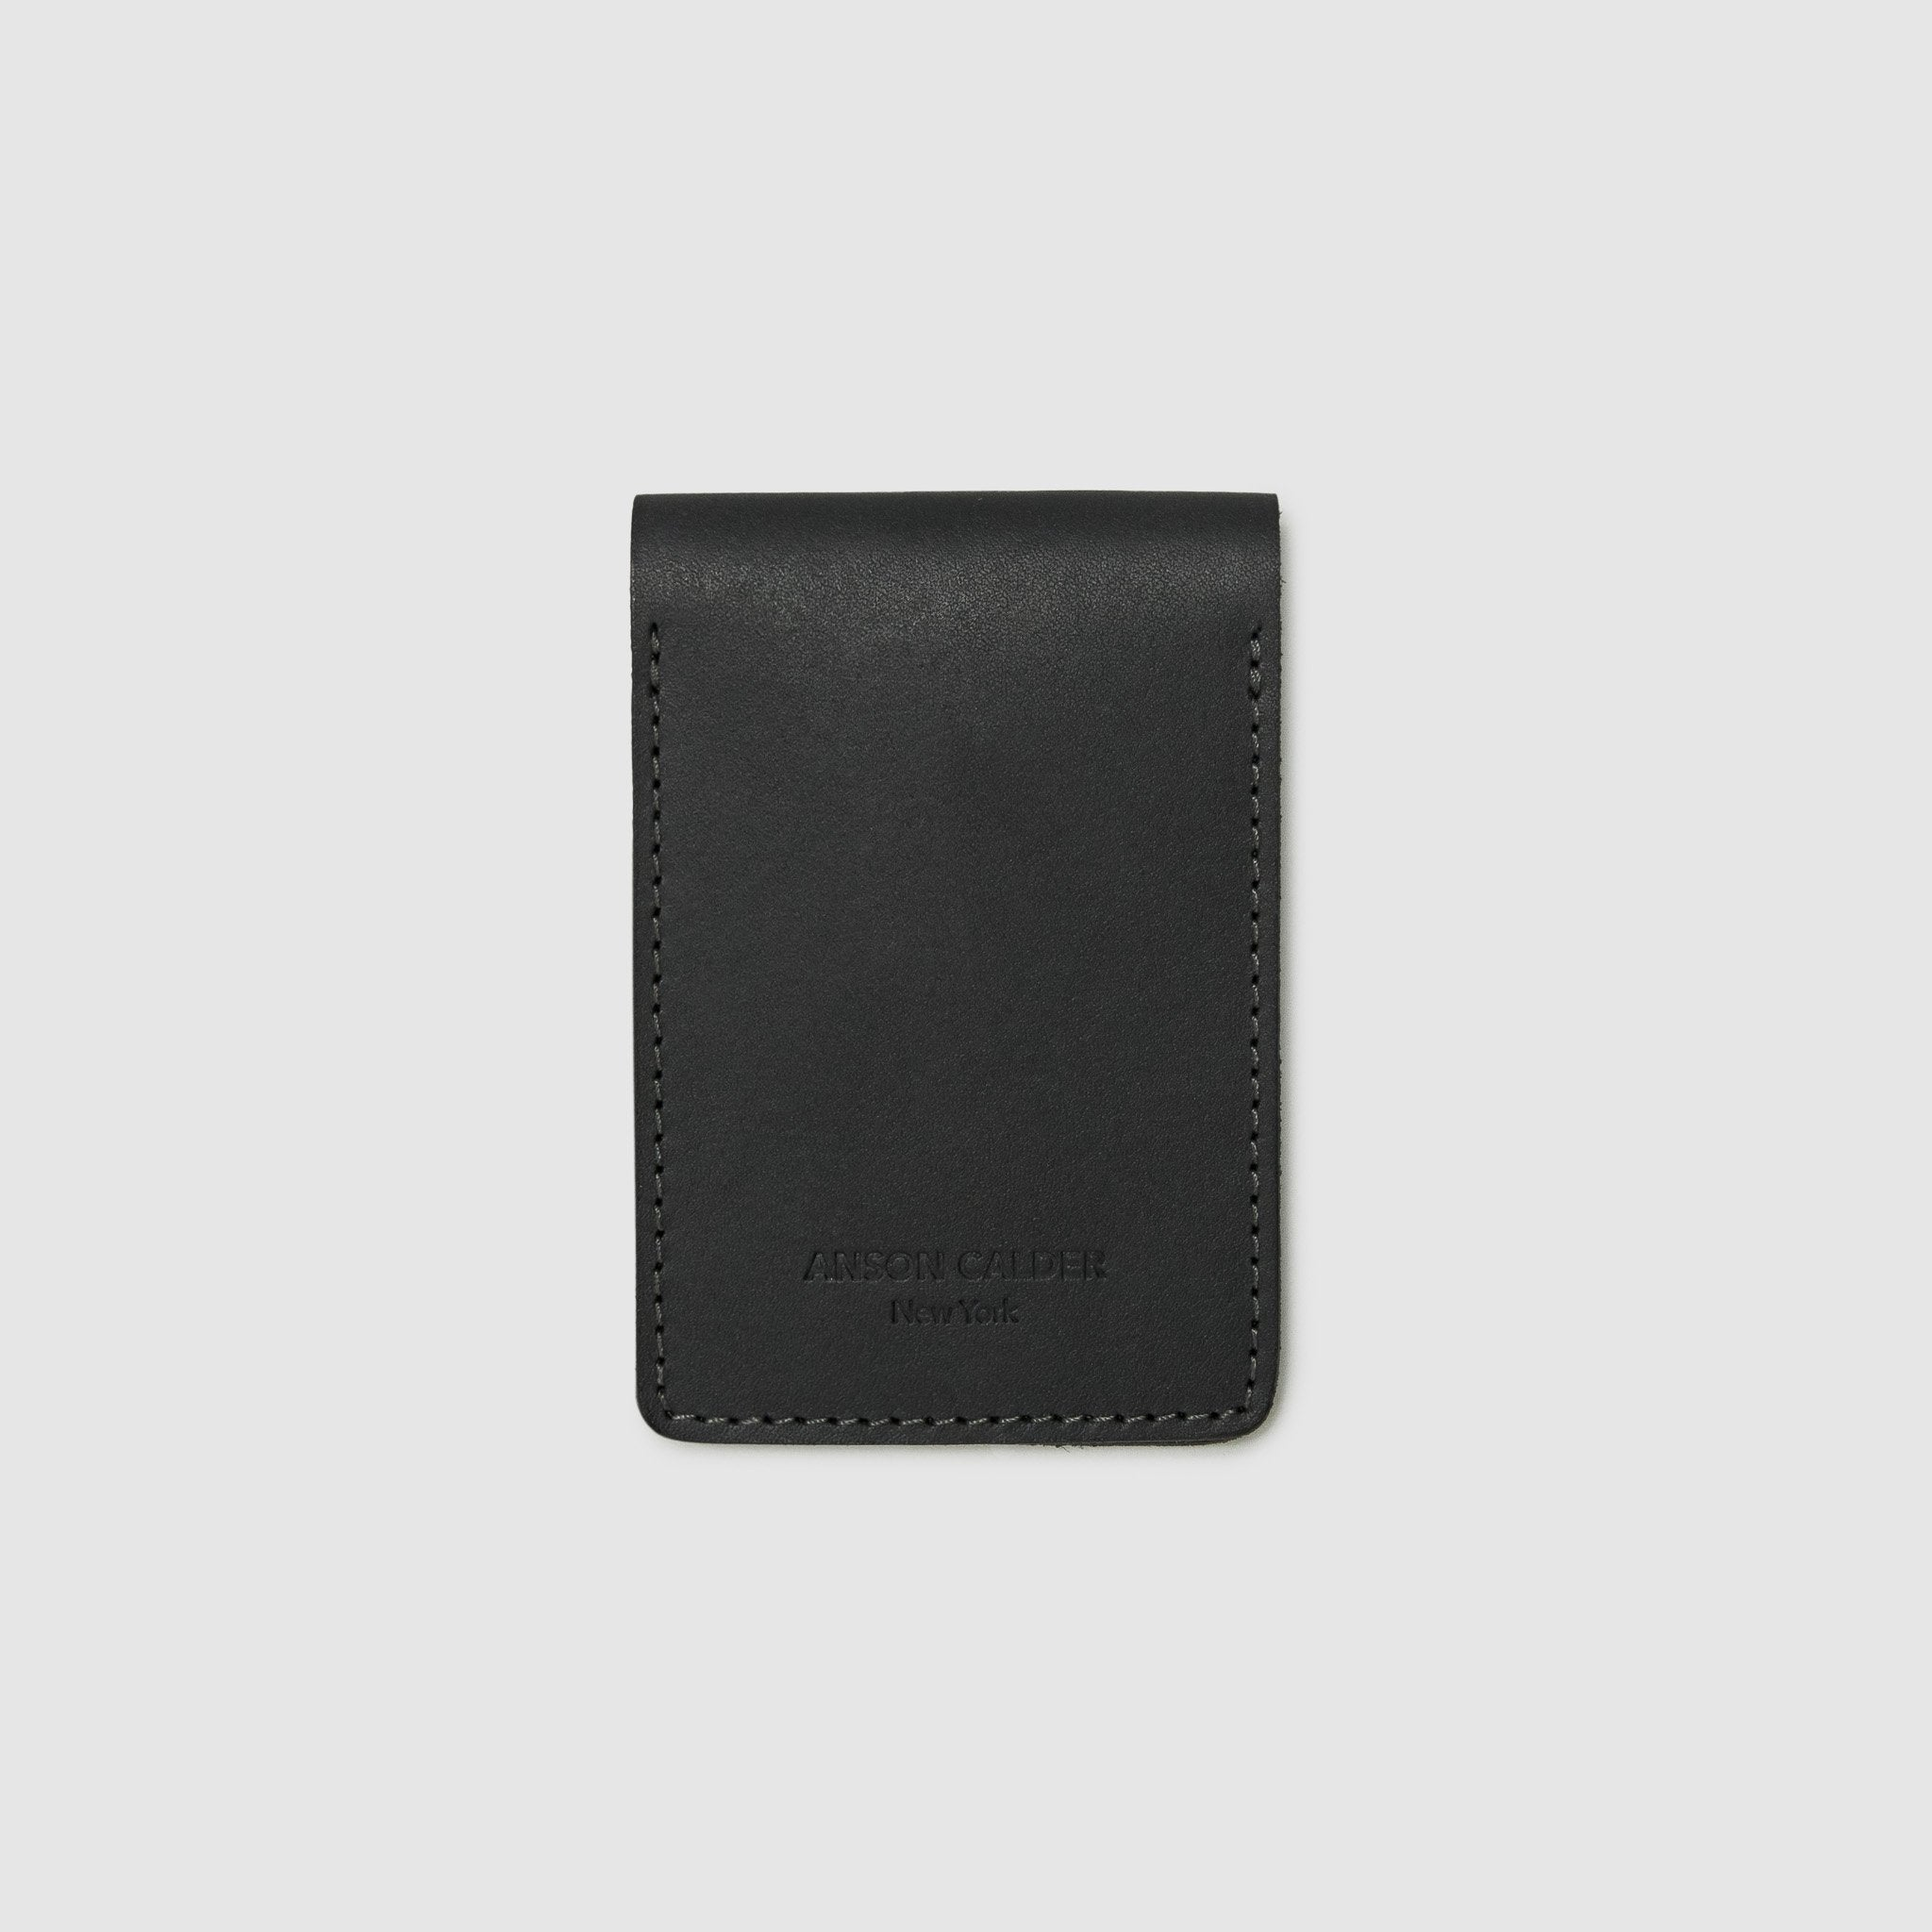 Anson Calder bifold Wallet with coin pocket RFID french calfskin leather _black